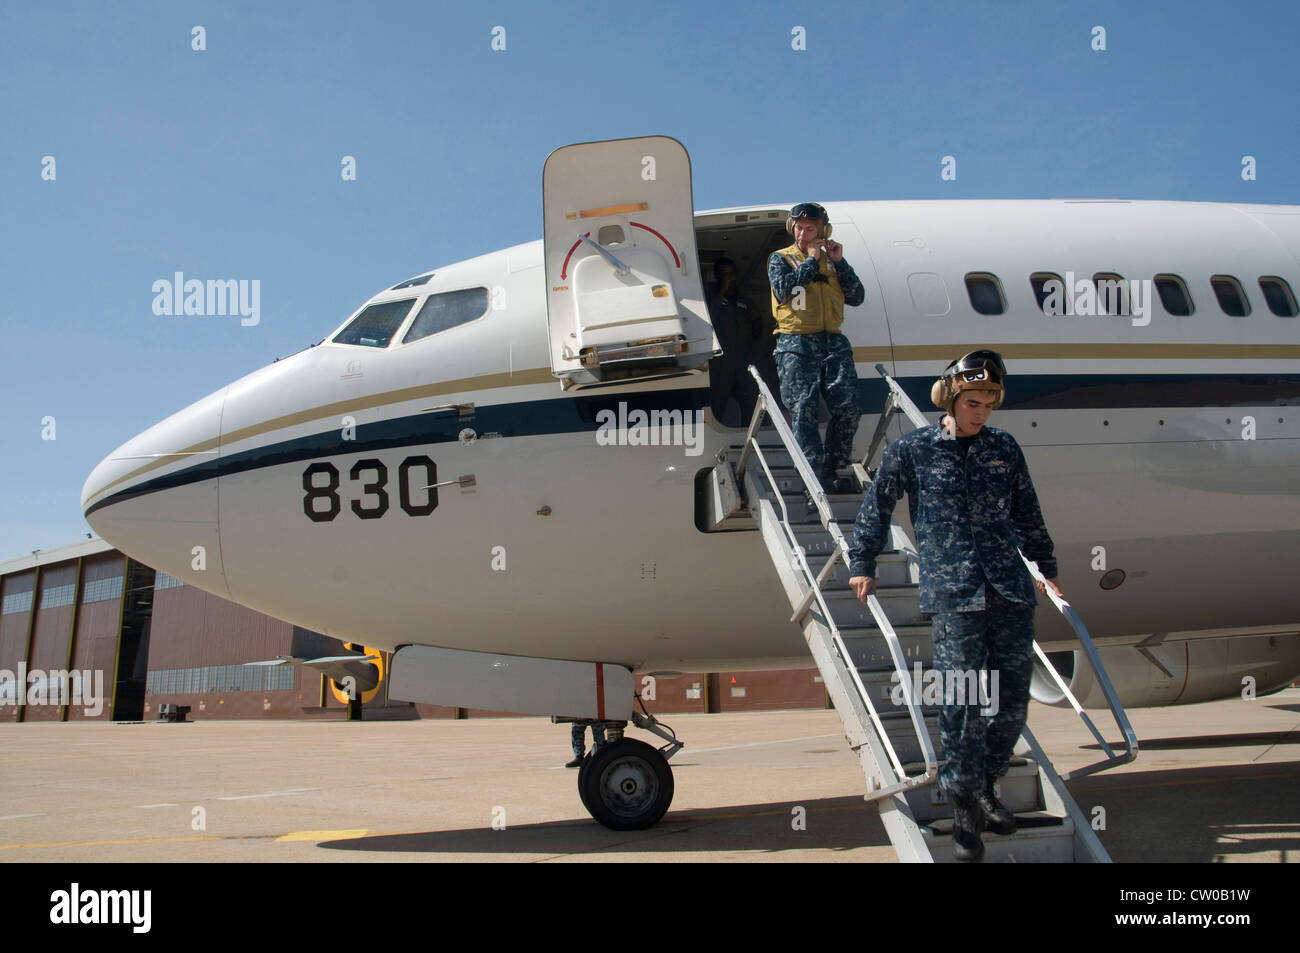 Aircrewman Mechanical Second Class David Adams, left, and Aircrewman Mechanical Second Class Sebastian Moss, right, - Stock Image